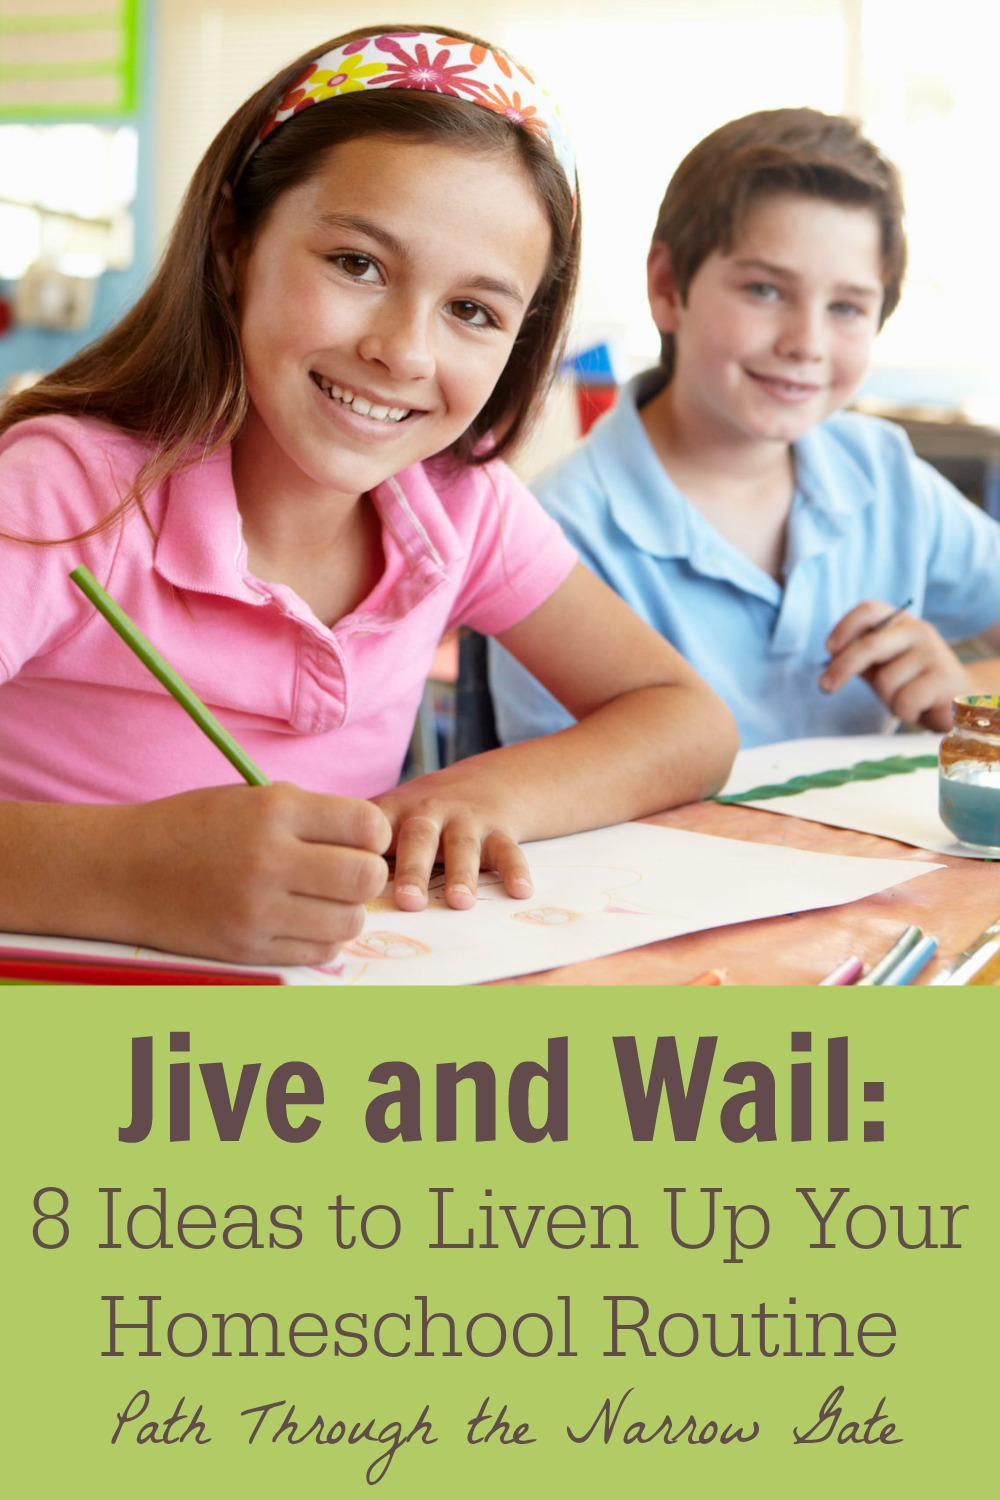 Has all the joy of learning flown out your homeschool window? Are you and your children enduring day after day of drudgery? Try implementing a few of these ideas to liven up your homeschool routine.